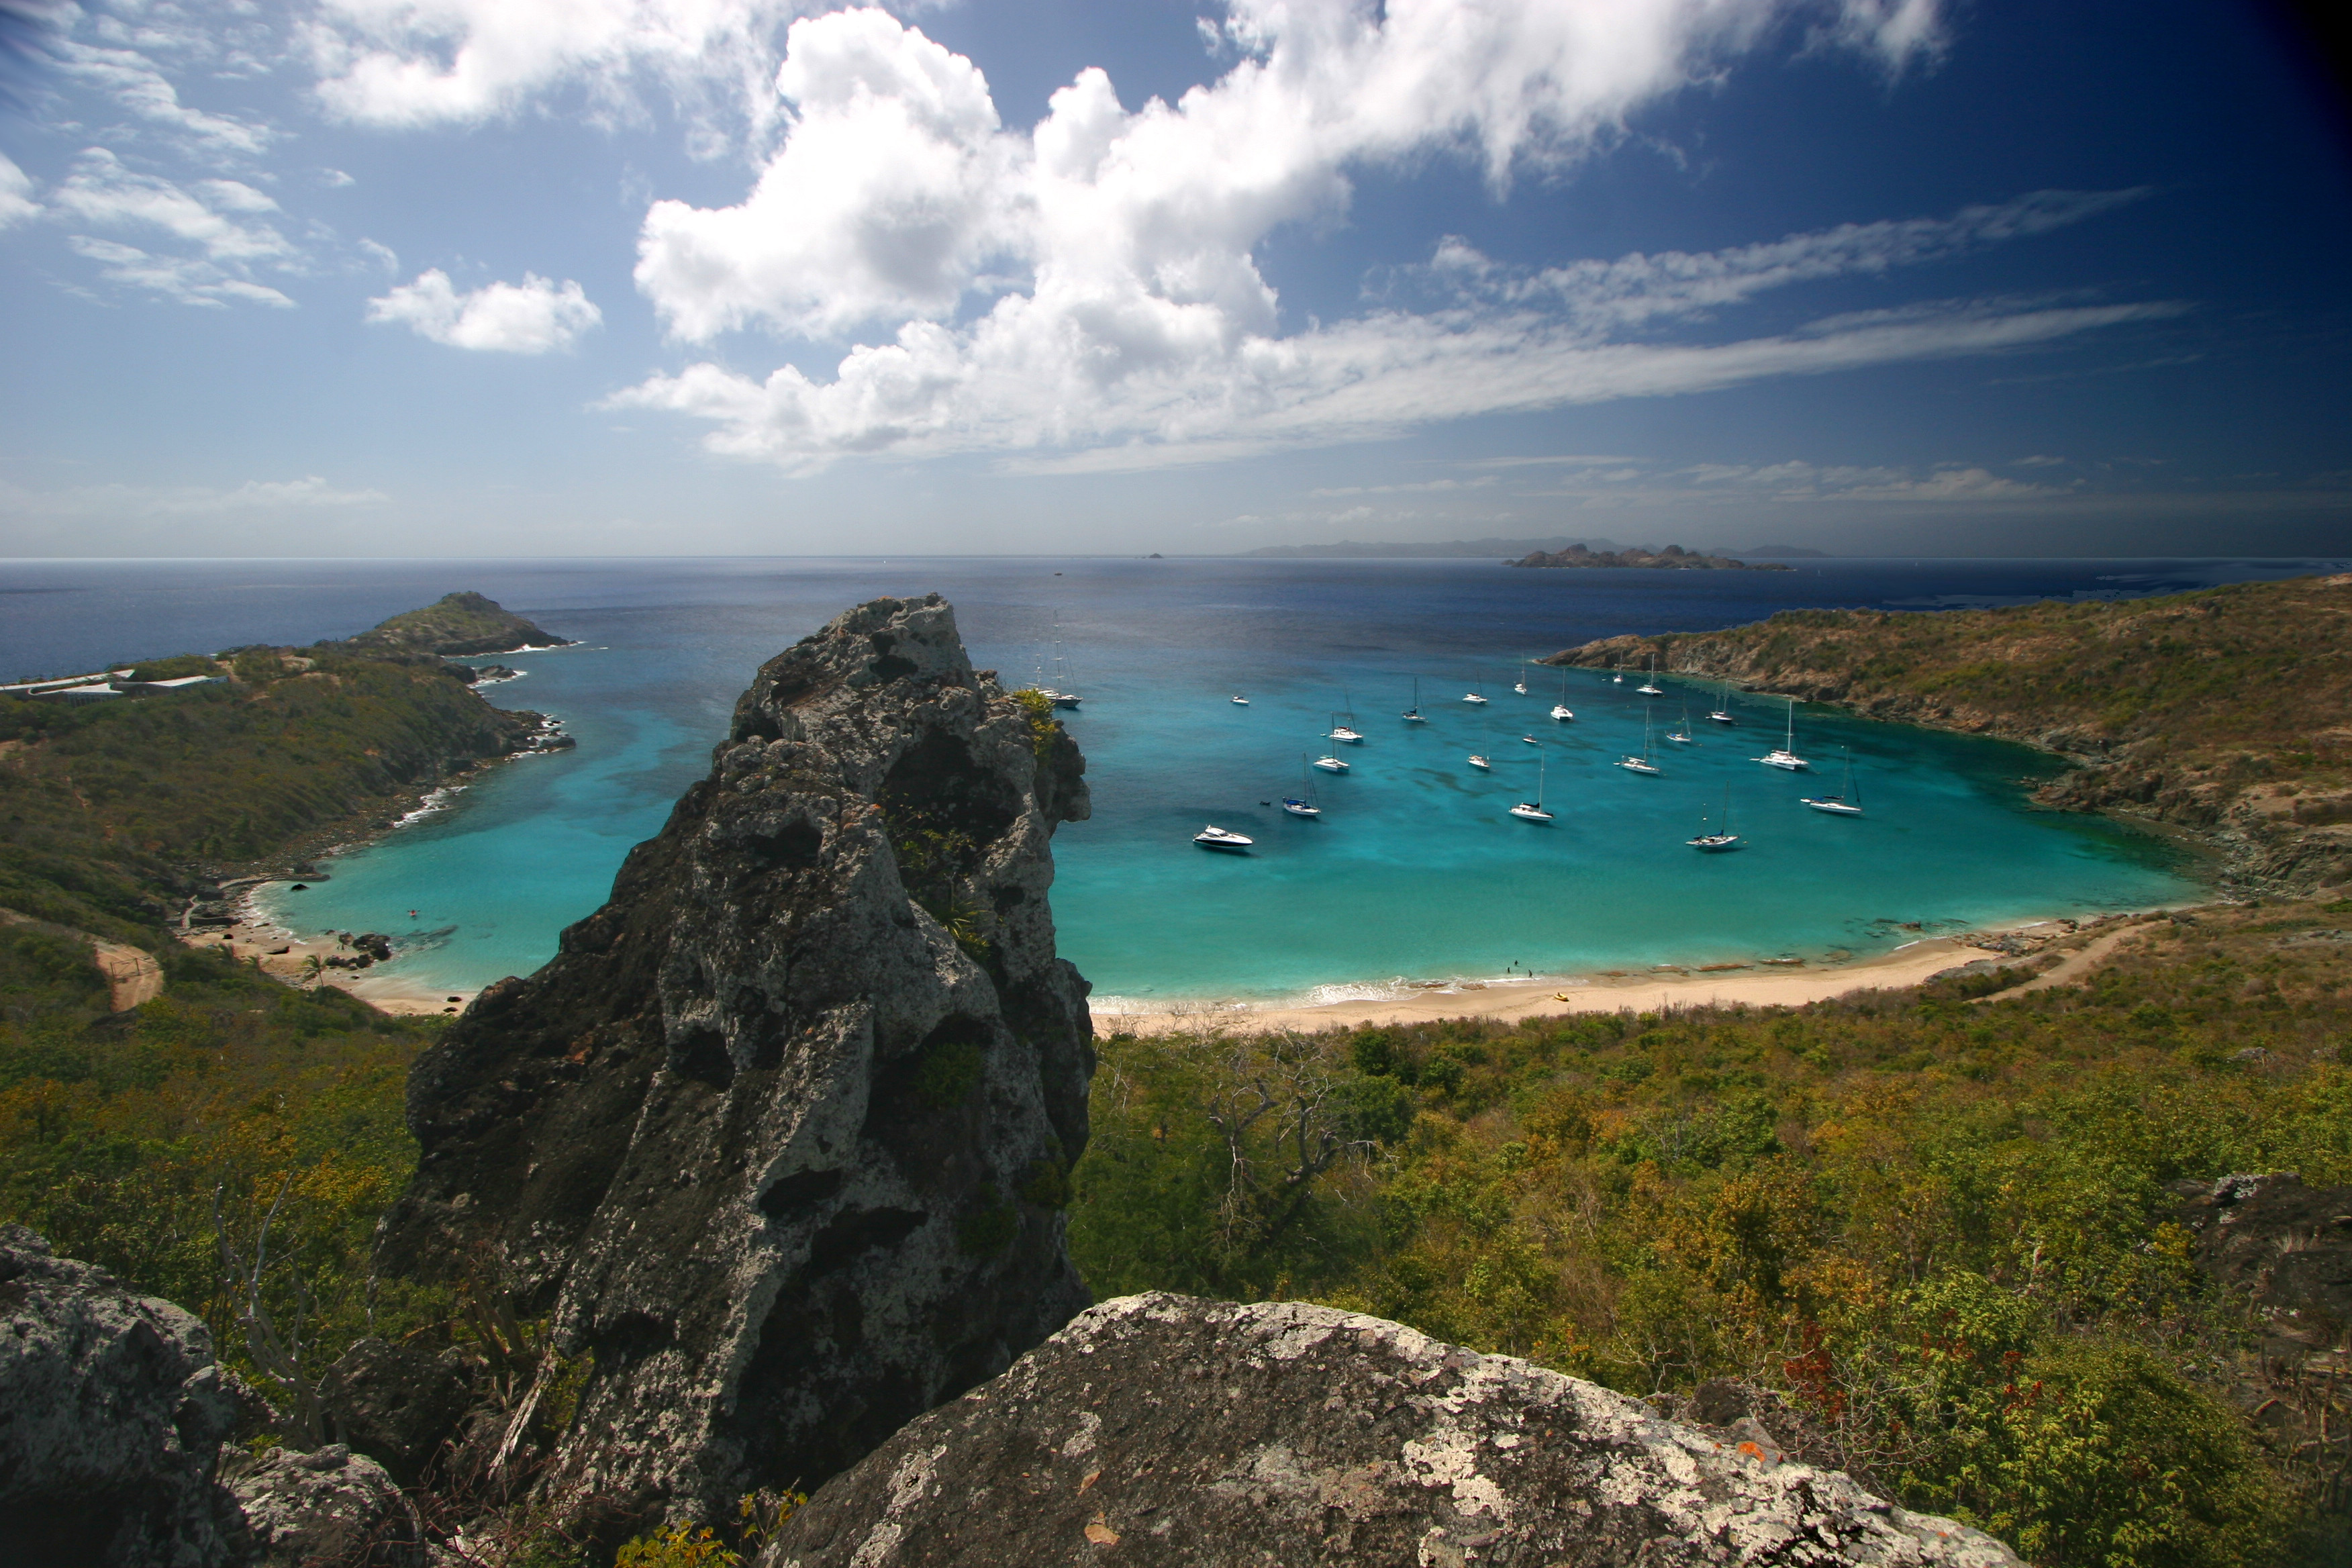 Best Island Beaches For Partying Mykonos St Barts: 10 Beaches Where Getting There Is Half The Fun